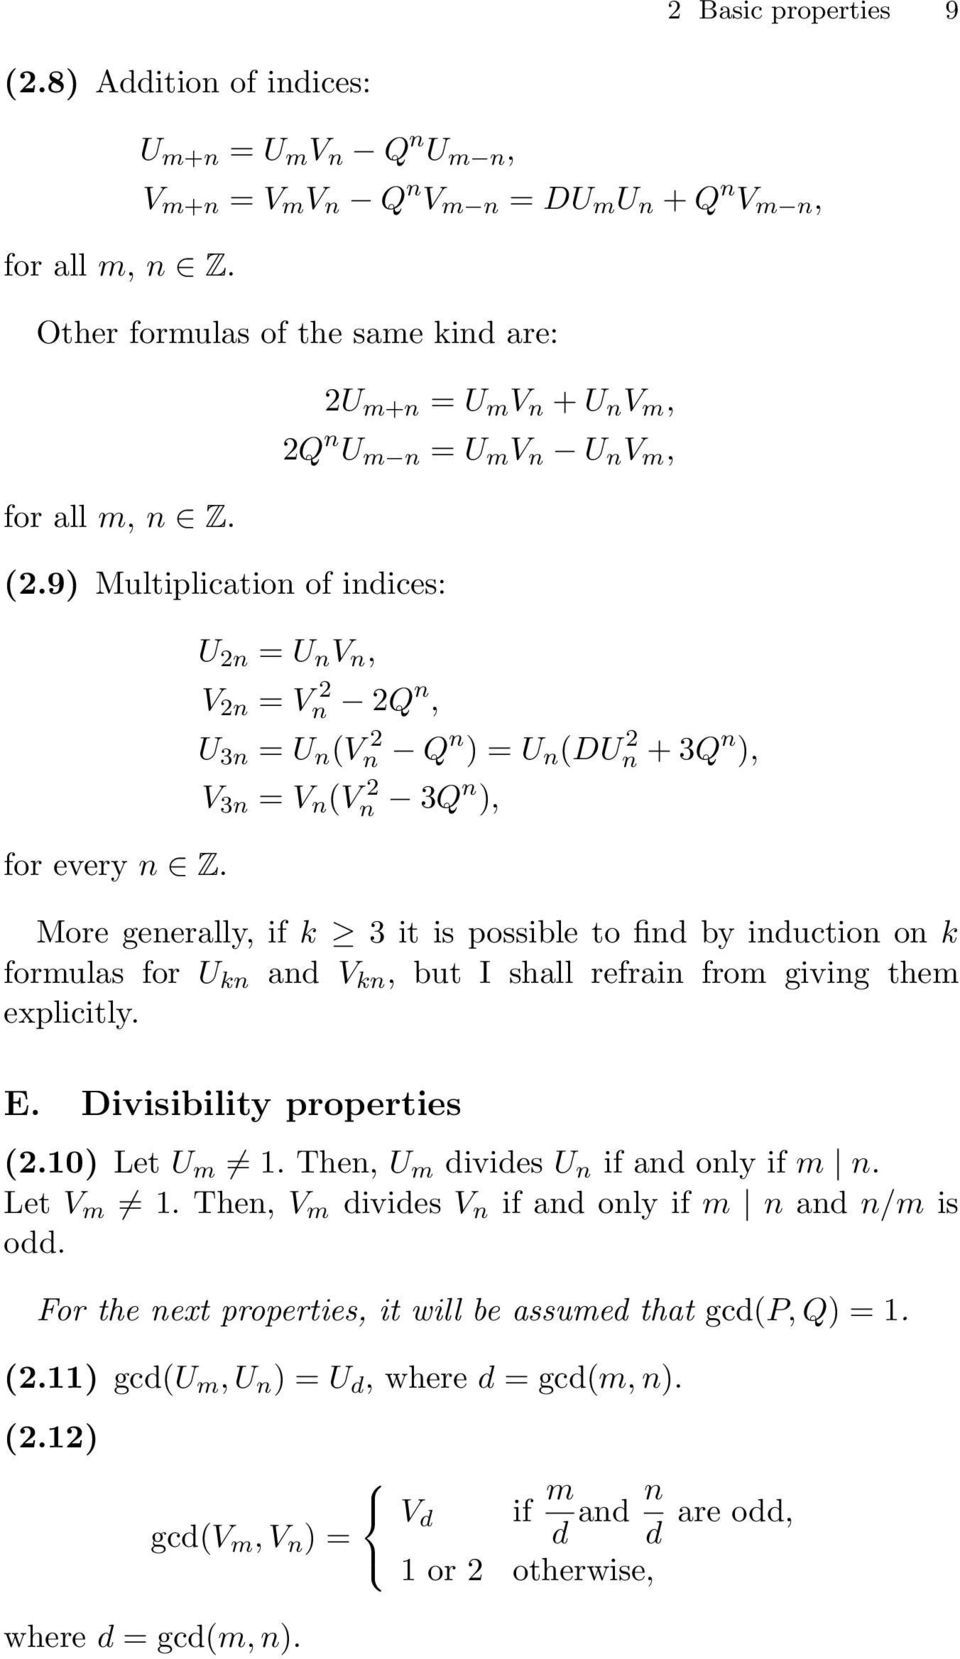 possible to find by induction on k formulas for U kn and V kn, but I shall refrain from giving them explicitly. E. Divisibility properties (2.10) Let U m = 1. Then,U m divides U n if and only if m n.